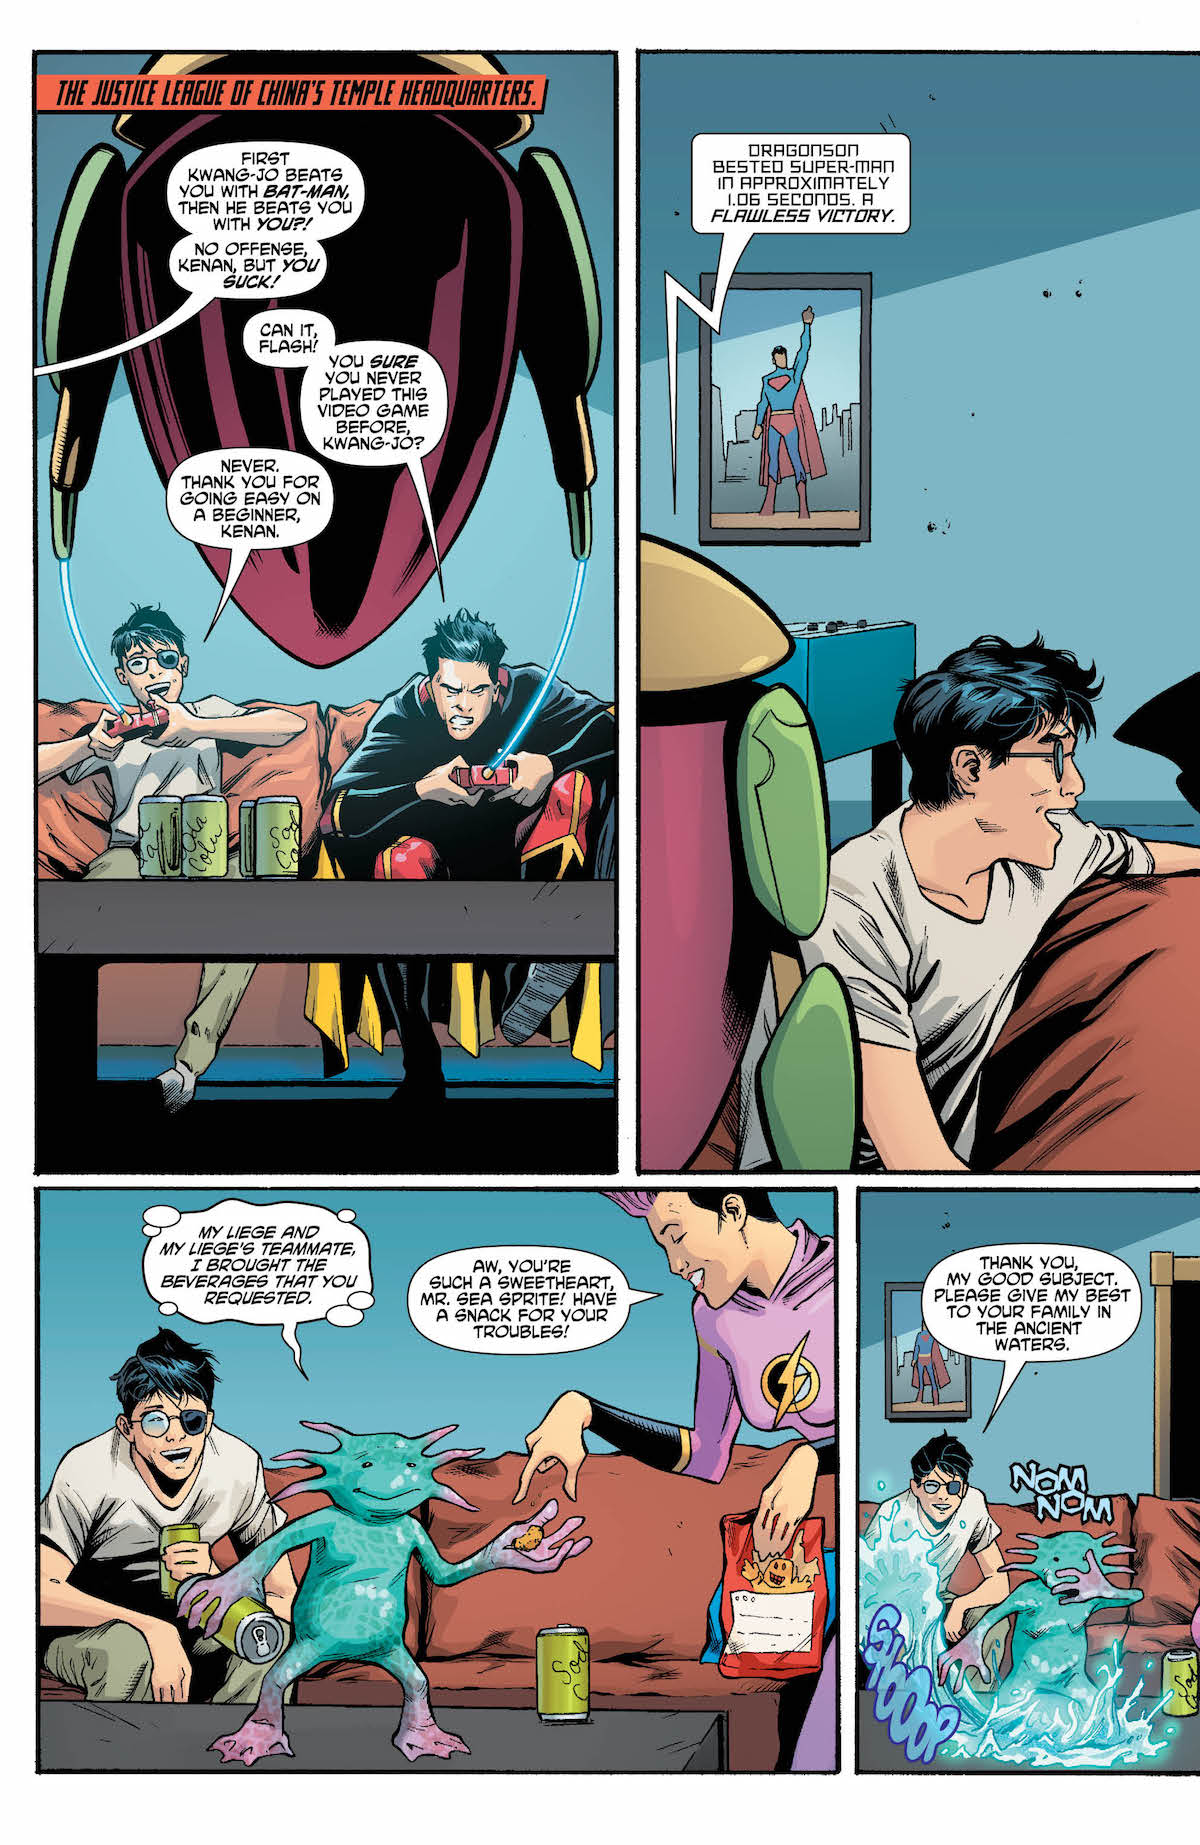 New Super-Man And the Justice League of China #24 page 2